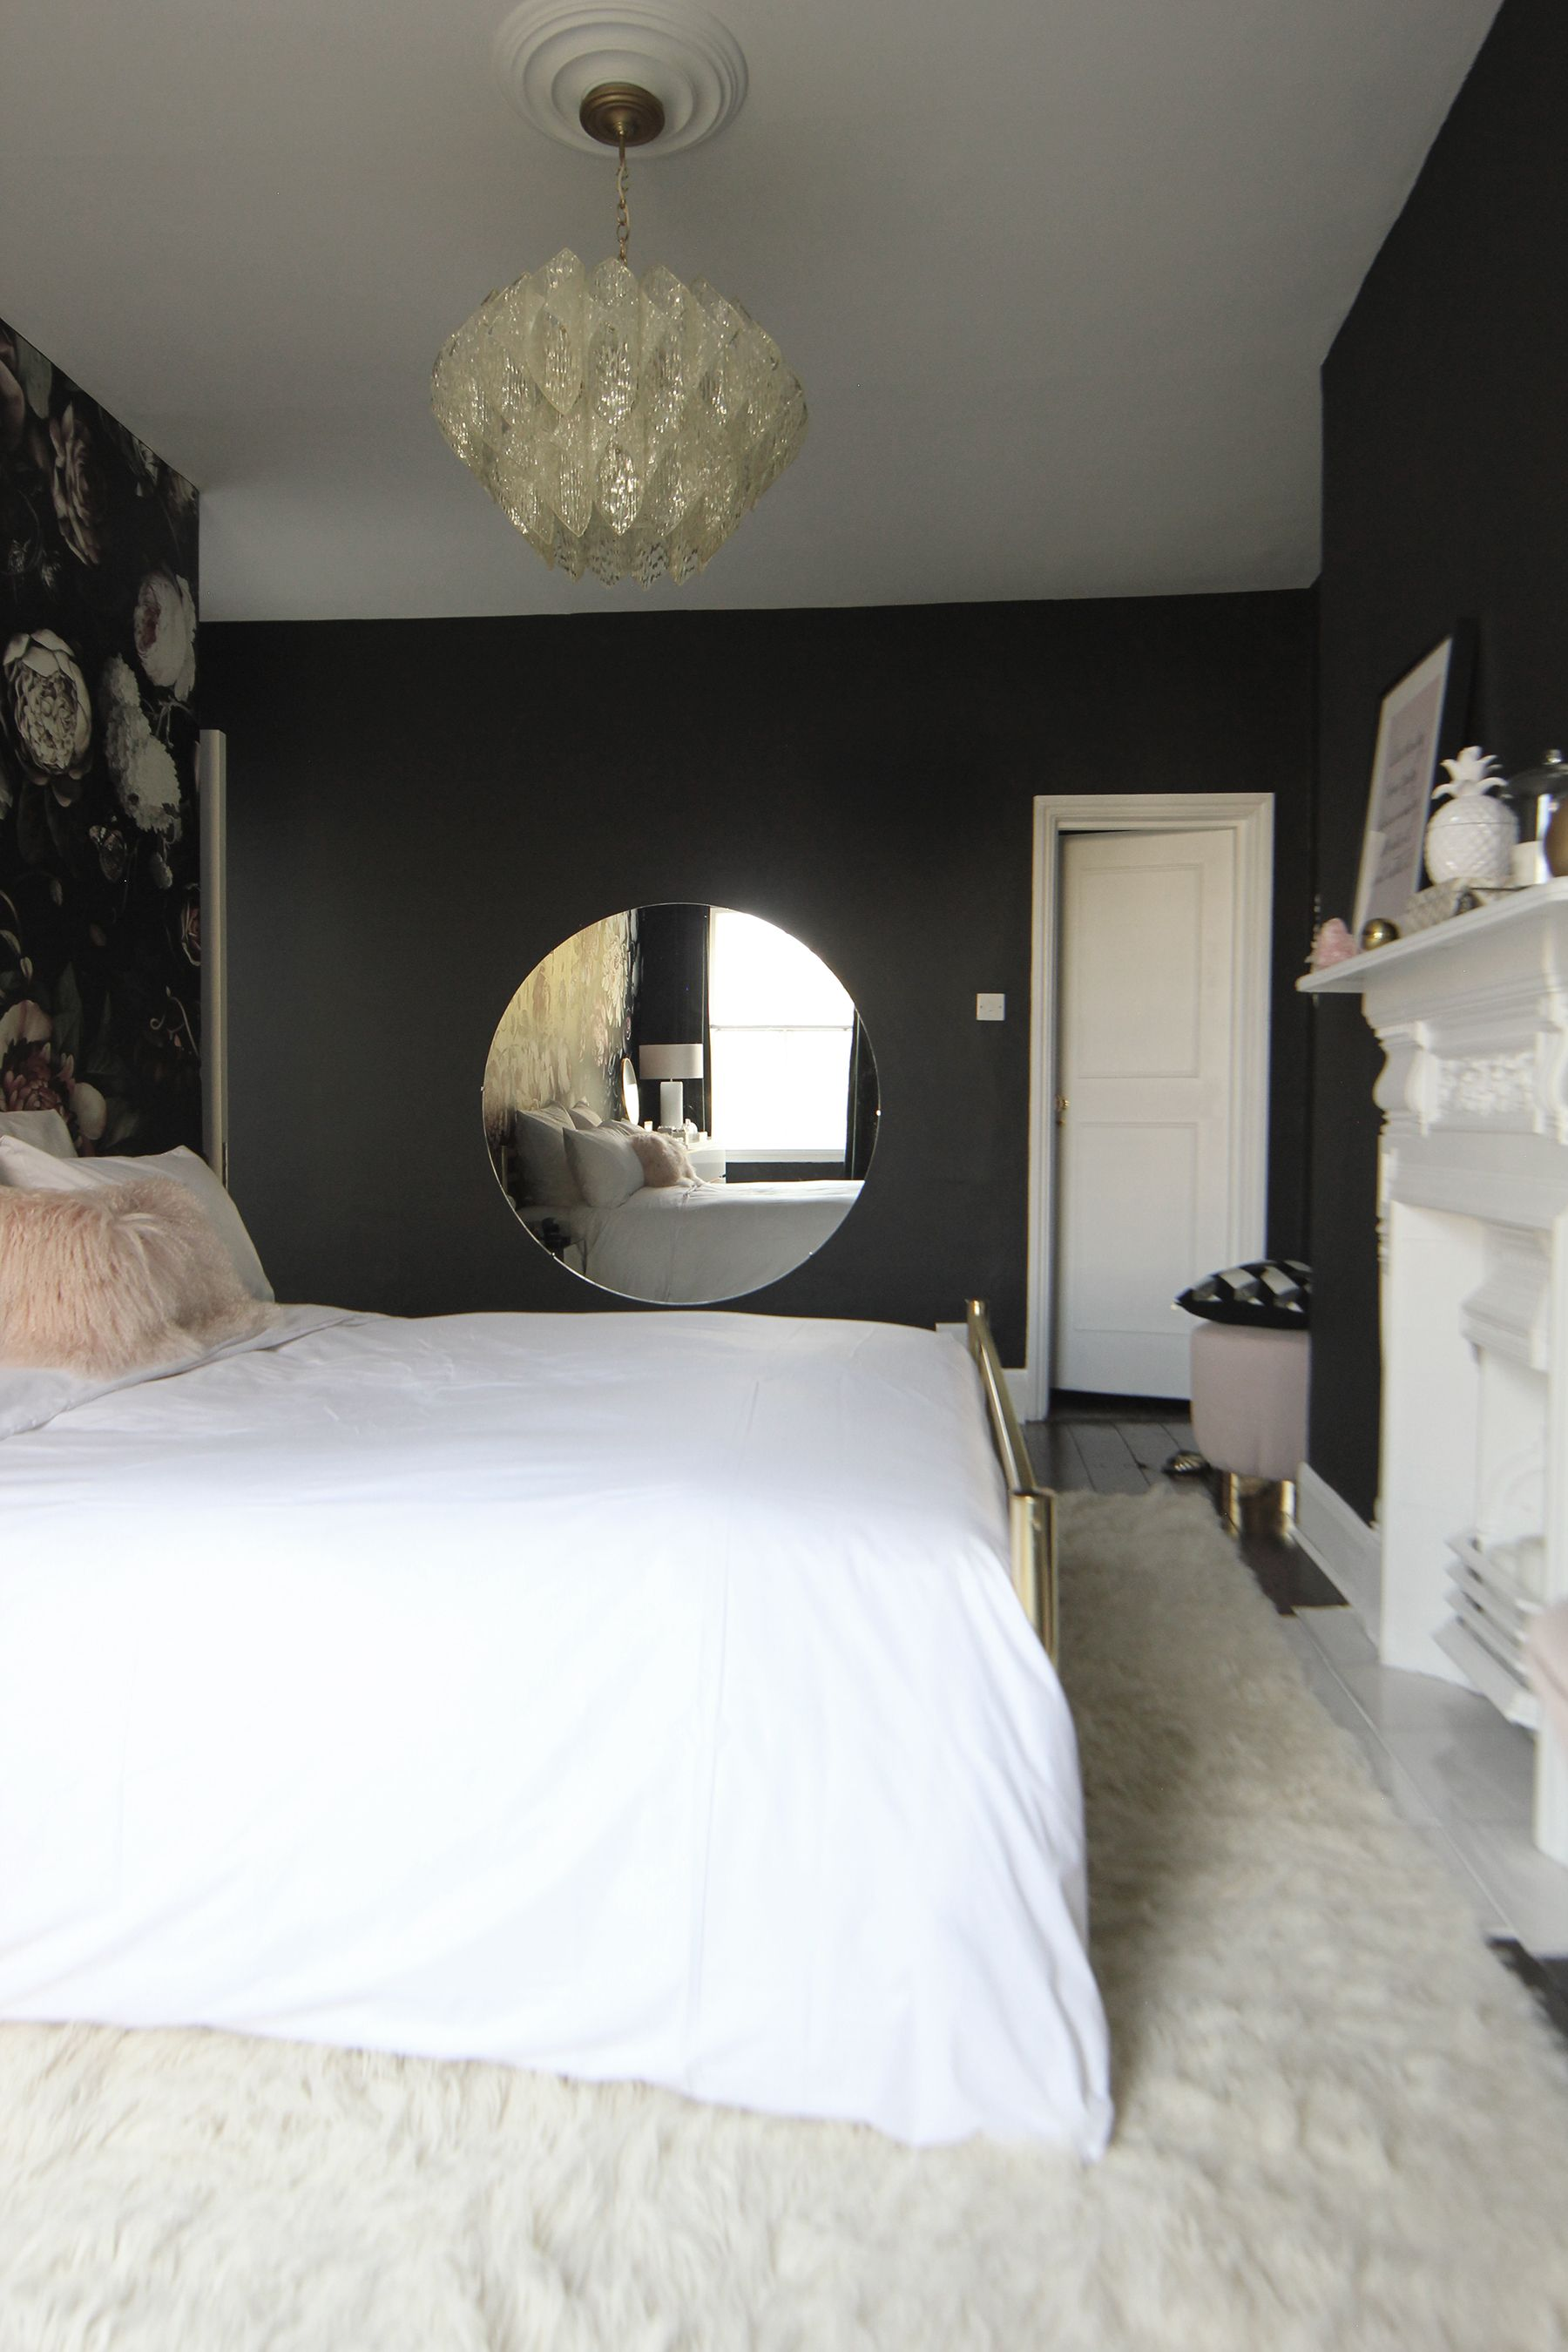 London Bedroom Wallpaper Preciously Me Blog One Room Challenge Bedroom Makeover Reveal